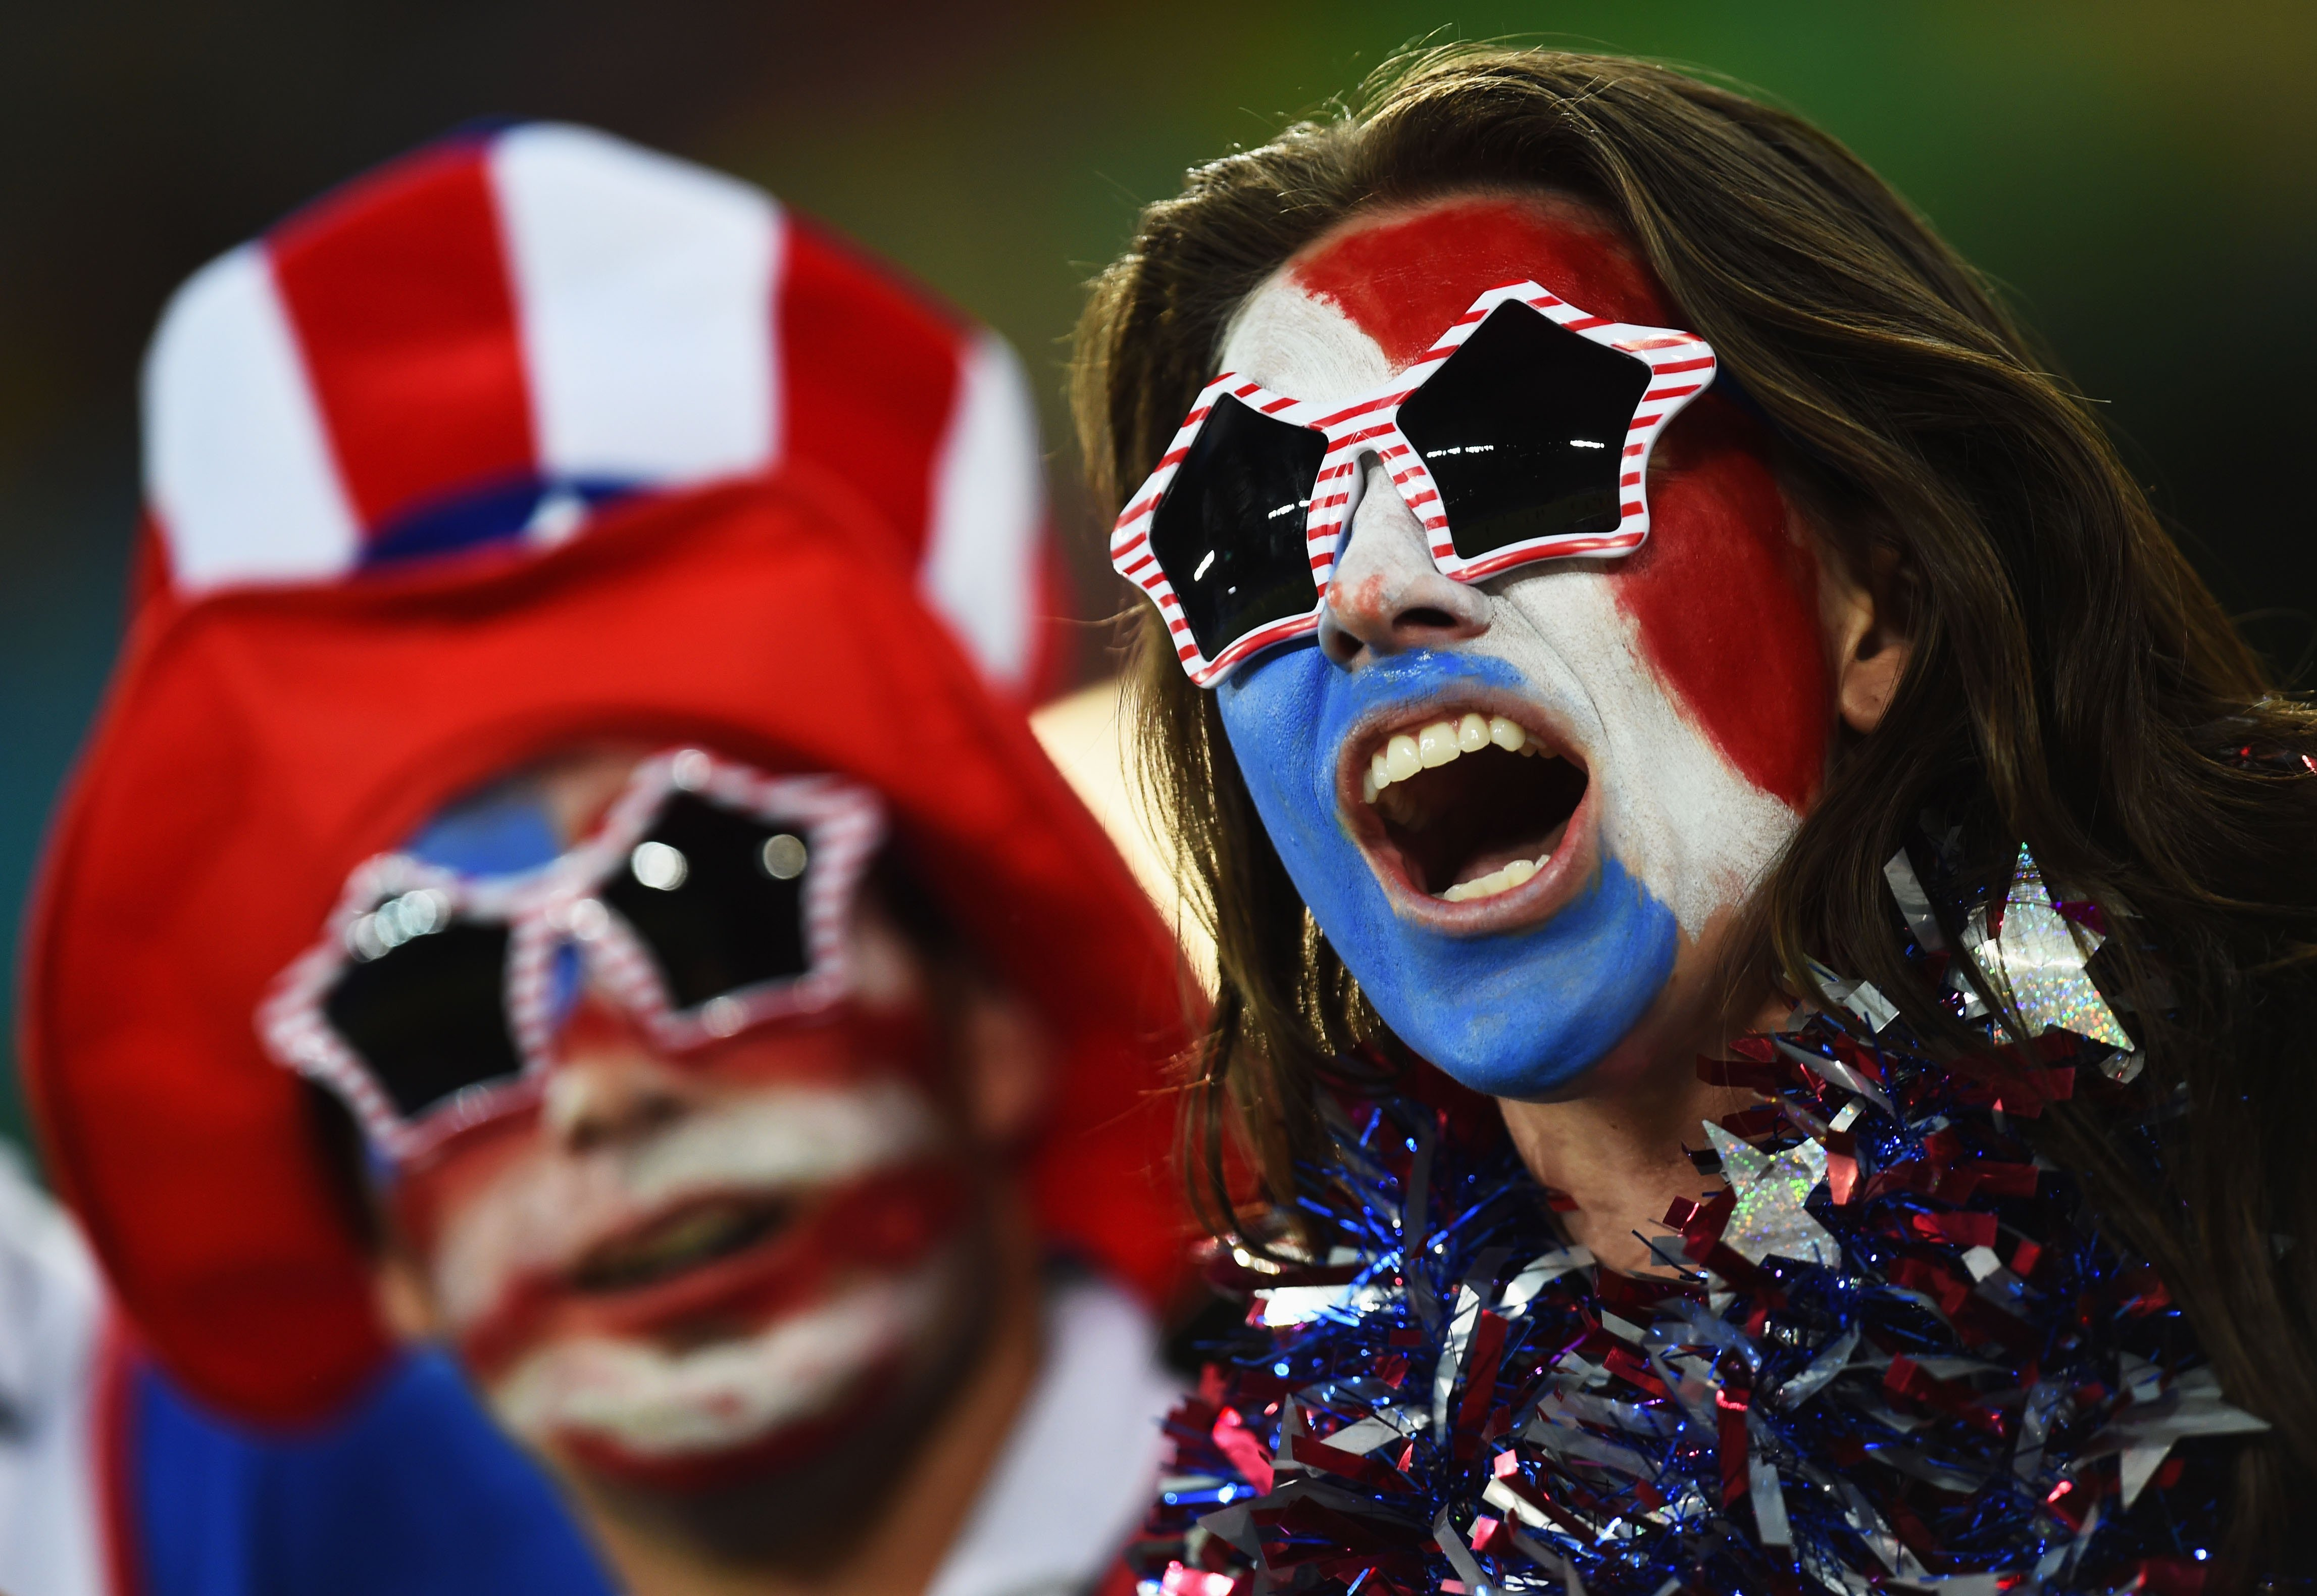 United States fans cheer prior to the 2014 FIFA World Cup Brazil Group G match between Ghana and the United States at Estadio das Dunas on June 16, 2014 in Natal, Brazil.